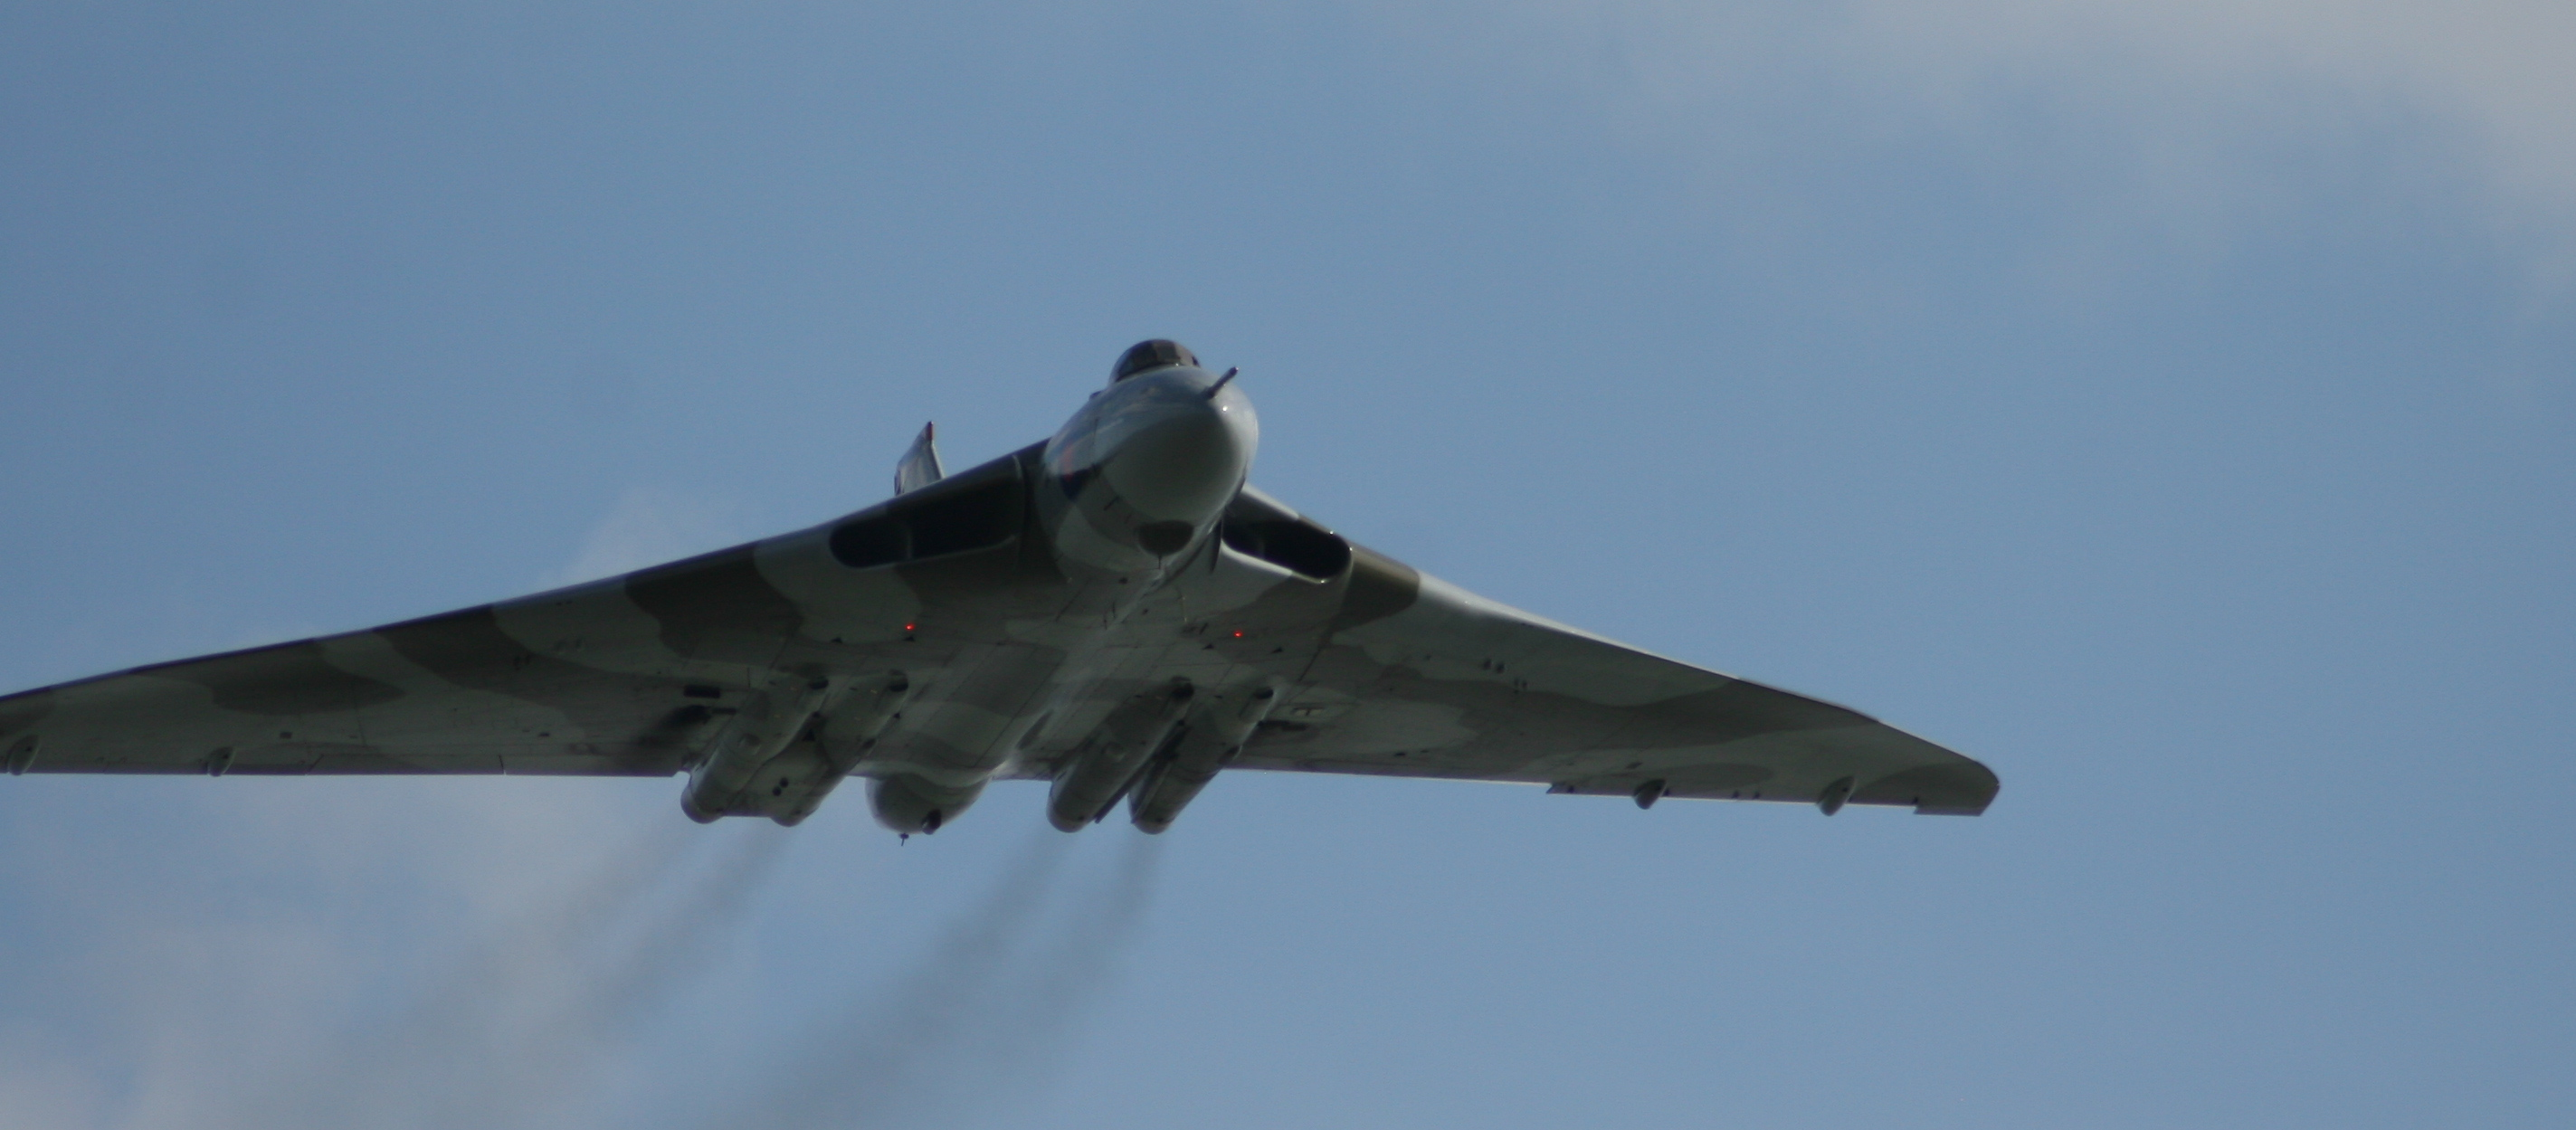 In the flight path of the Vulcan